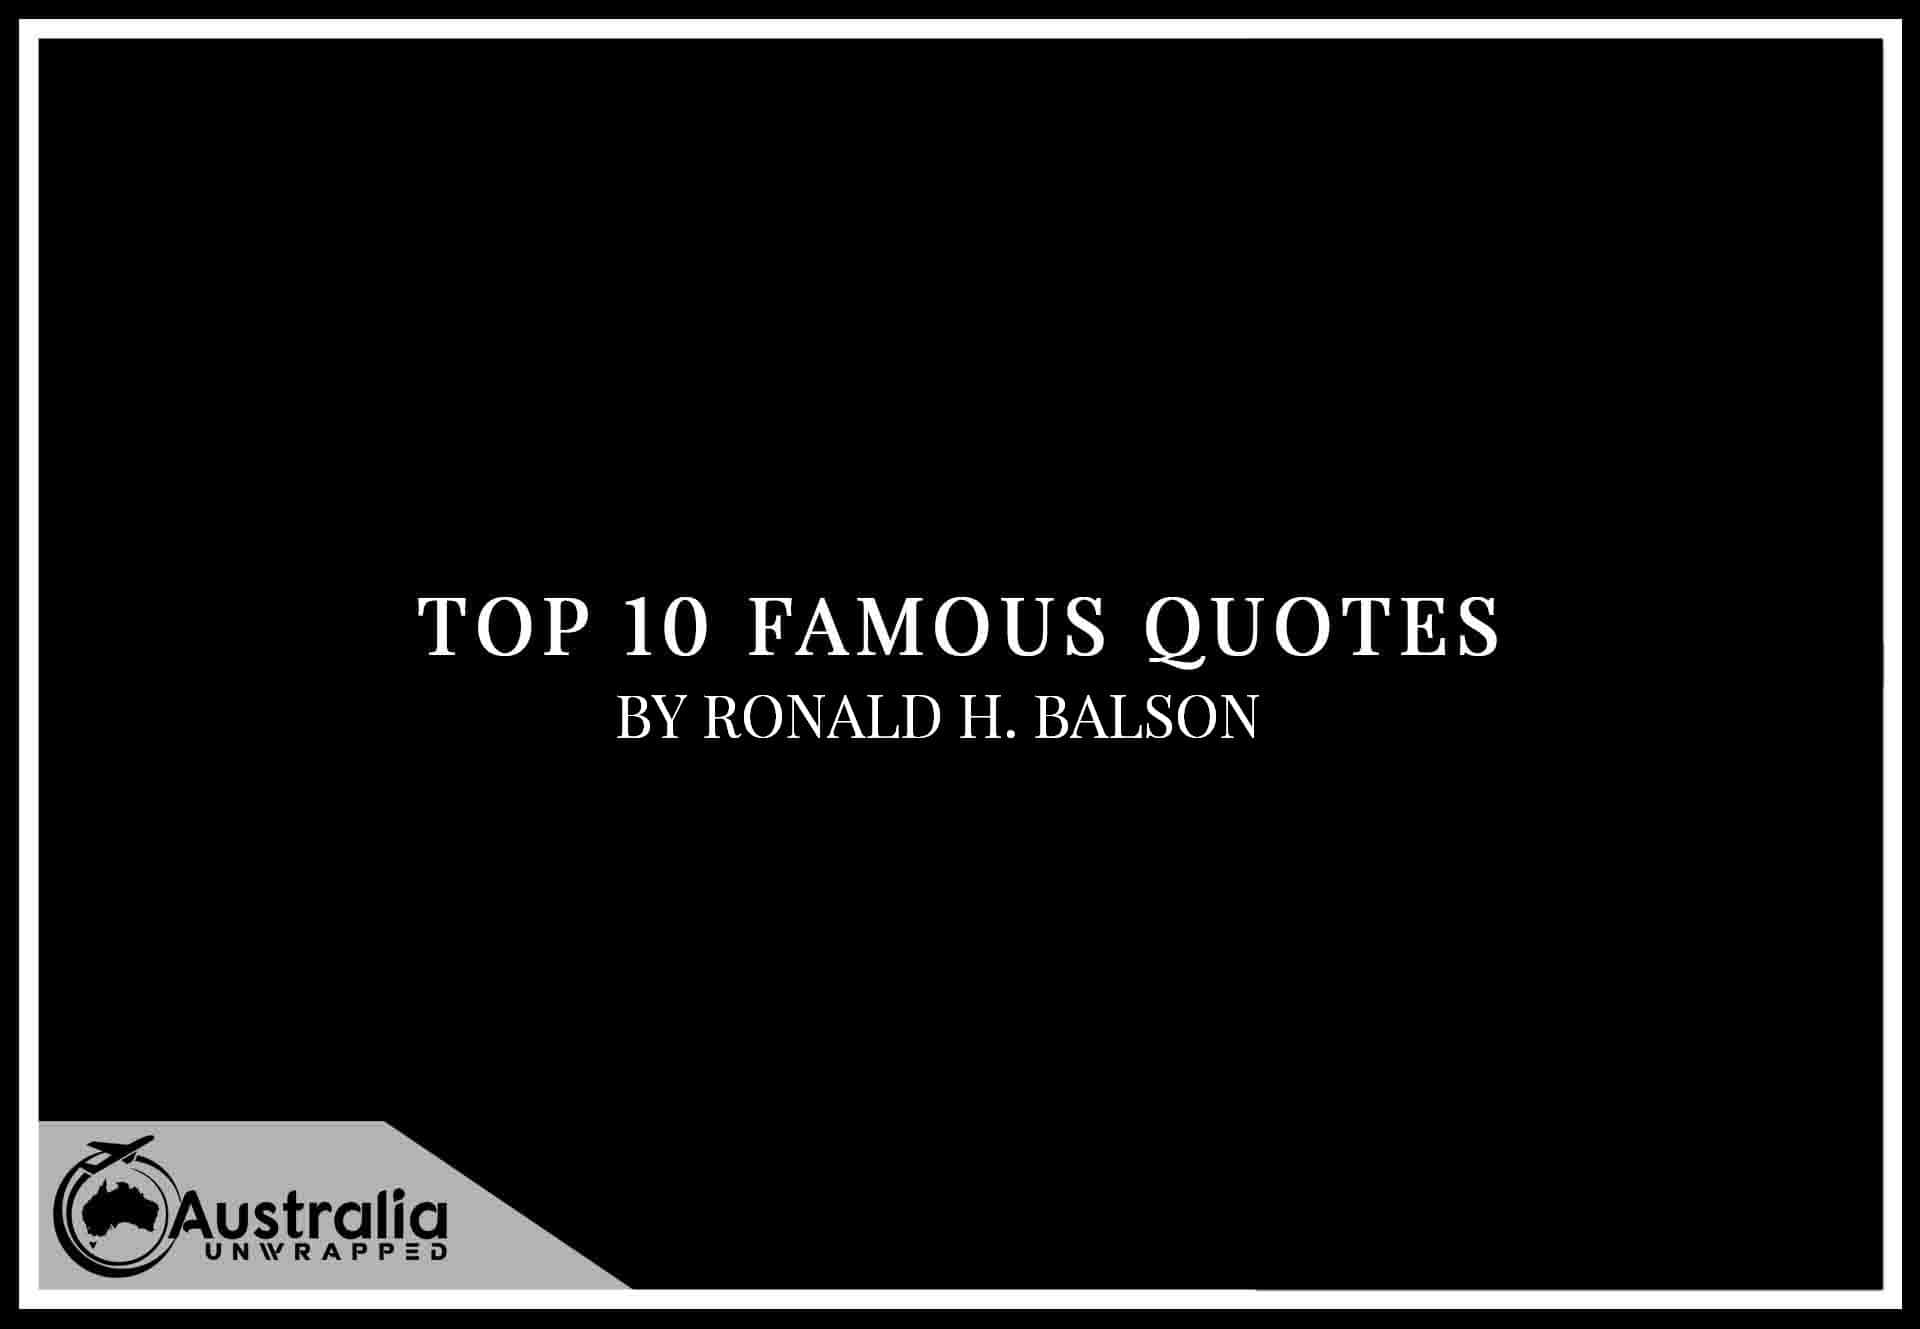 Top 10 Famous Quotes by Author Ronald H. Balson